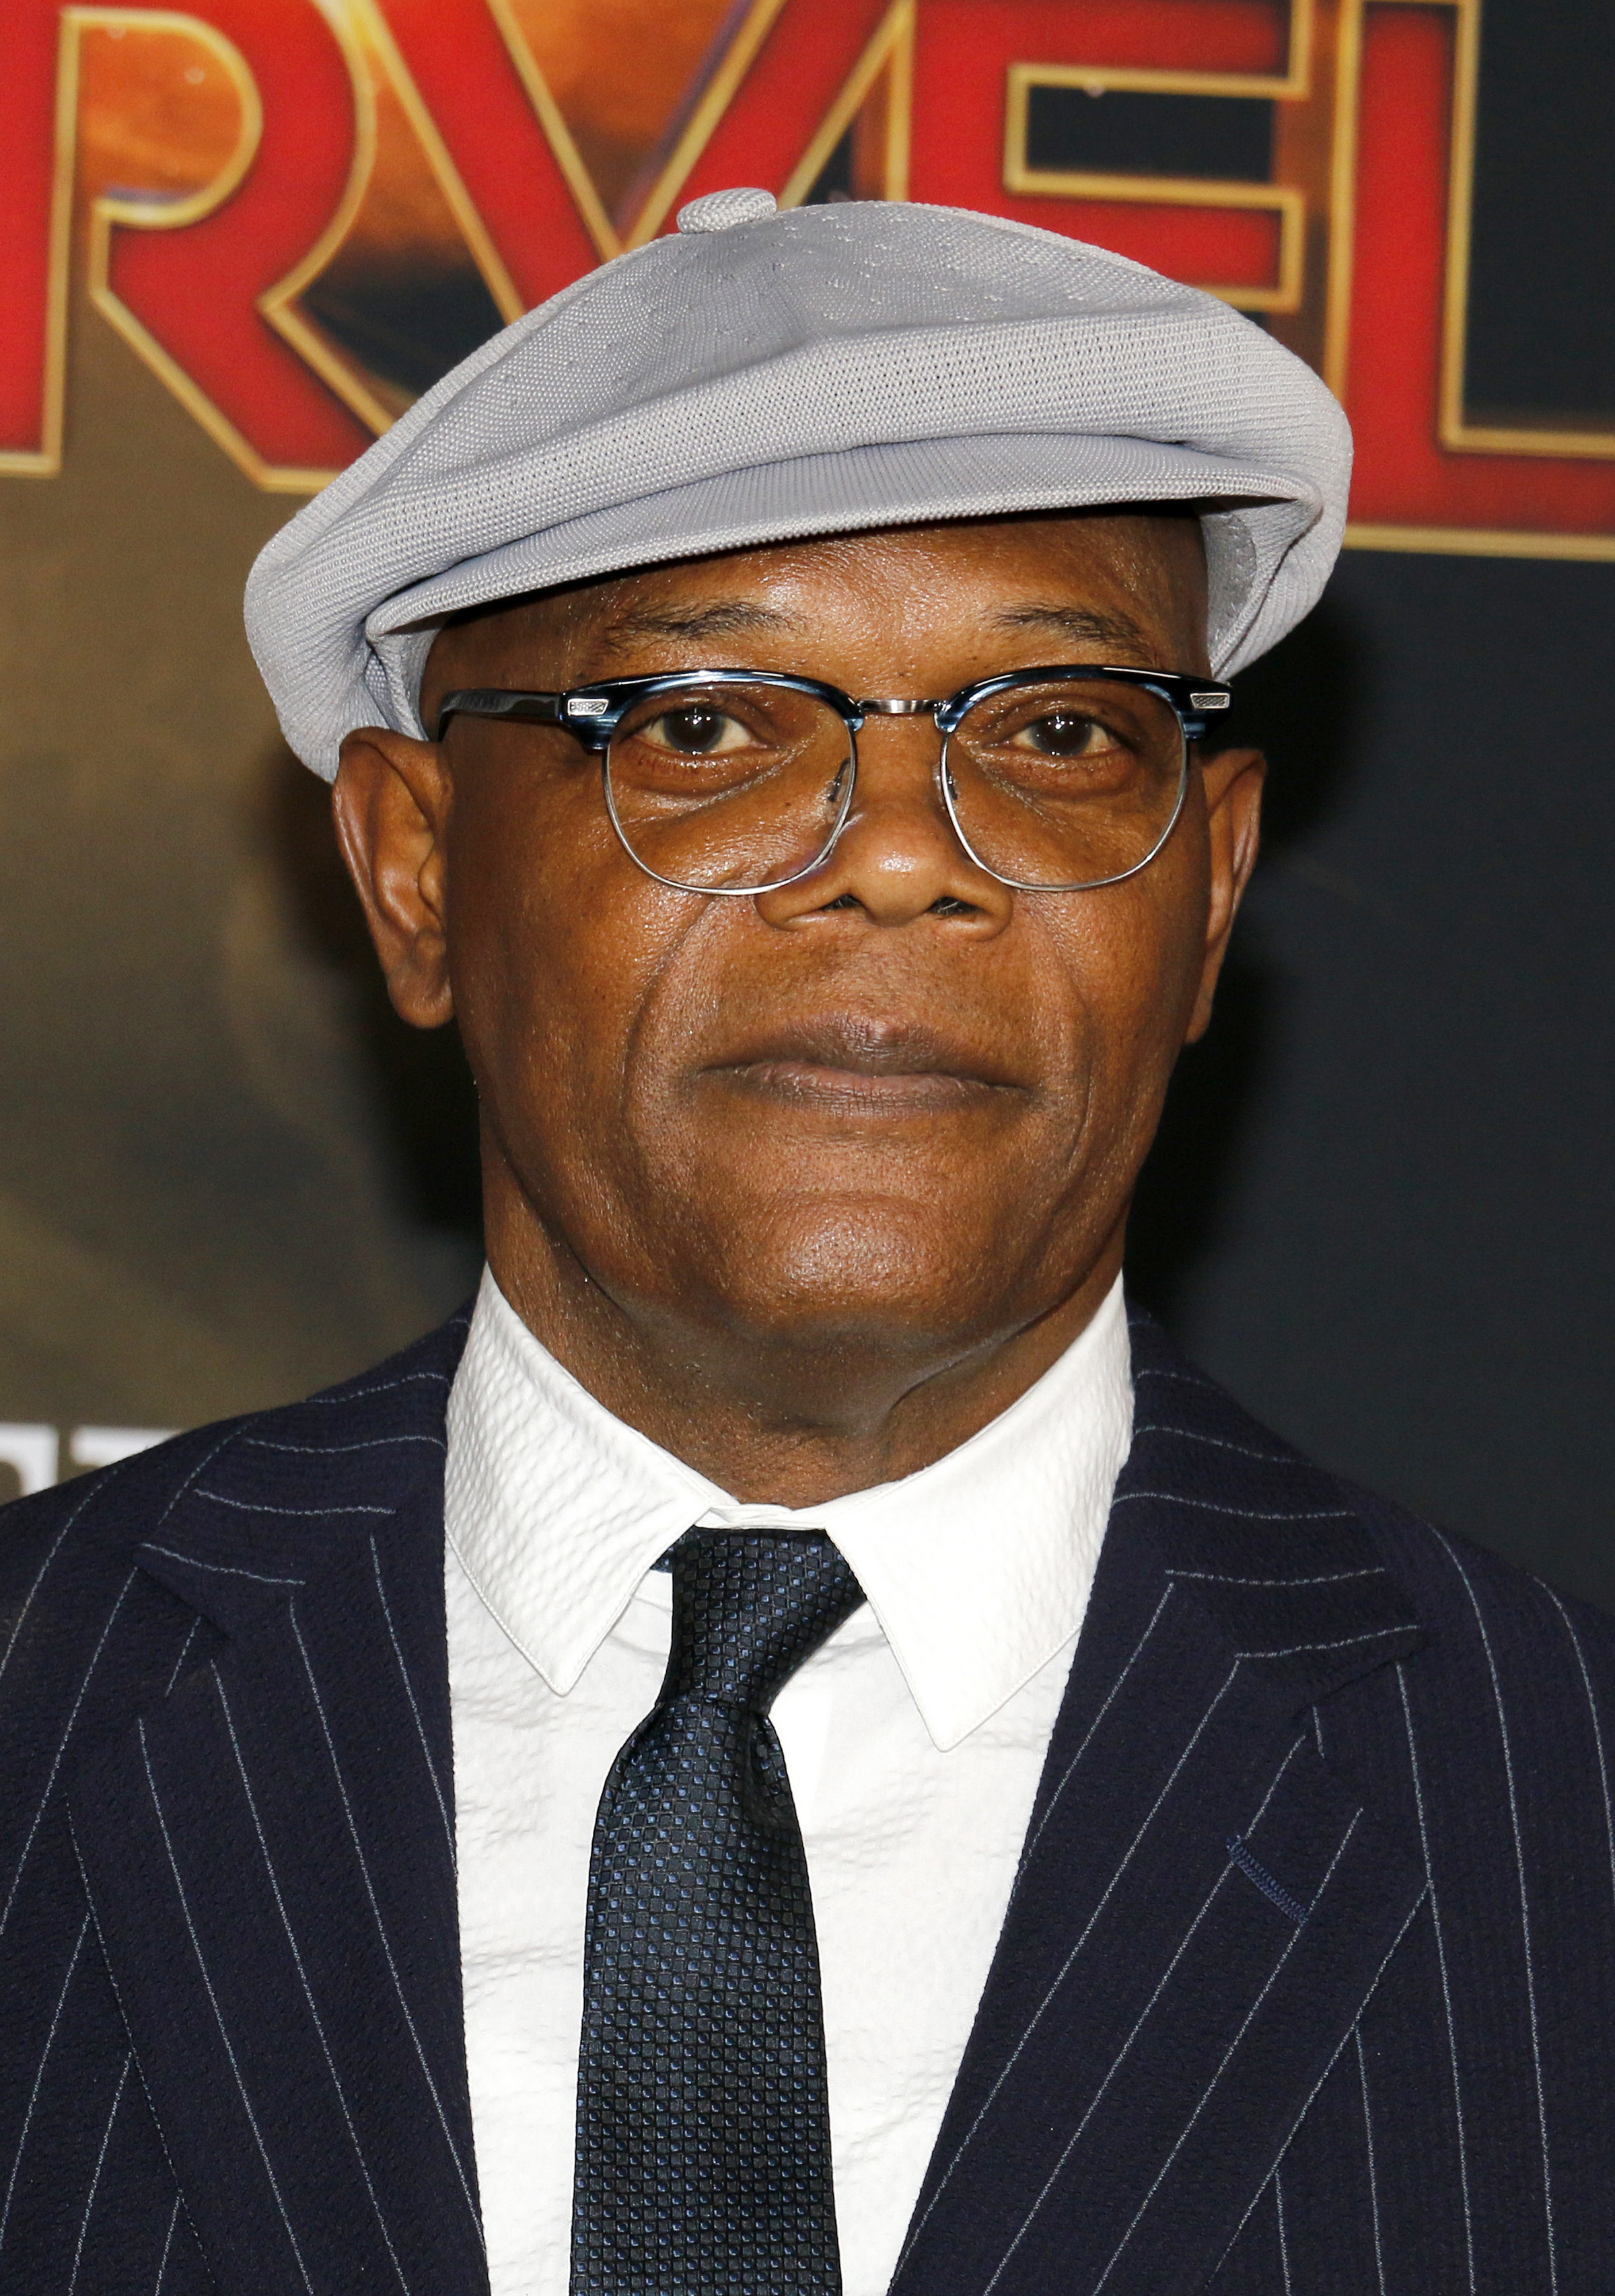 Samuel L. Jackson Says 'Stay The F*ck Home' In Hilarious Poem On 'Jimmy Kimmel Live' [WATCH]